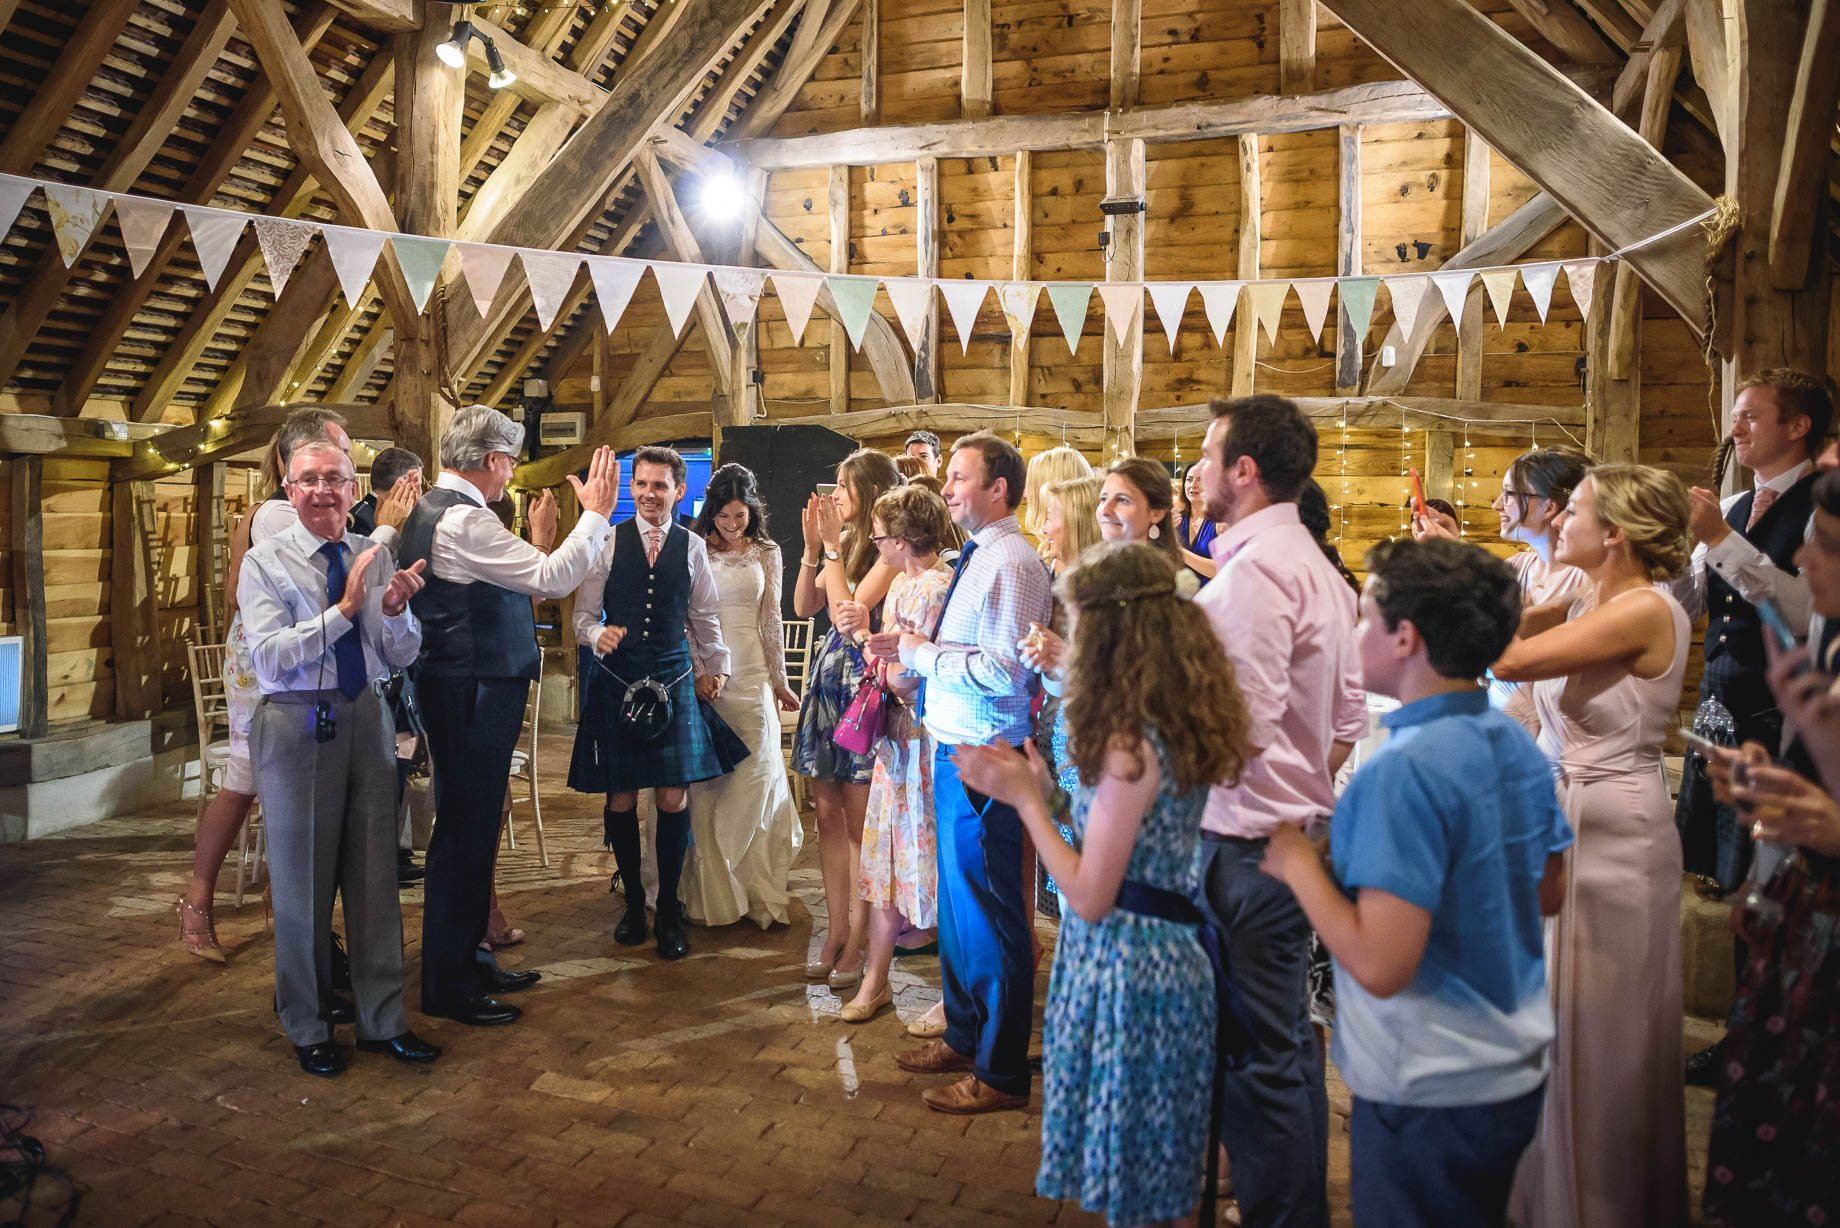 Gildings Barn wedding photography - Sarah and Steve (175 of 190)